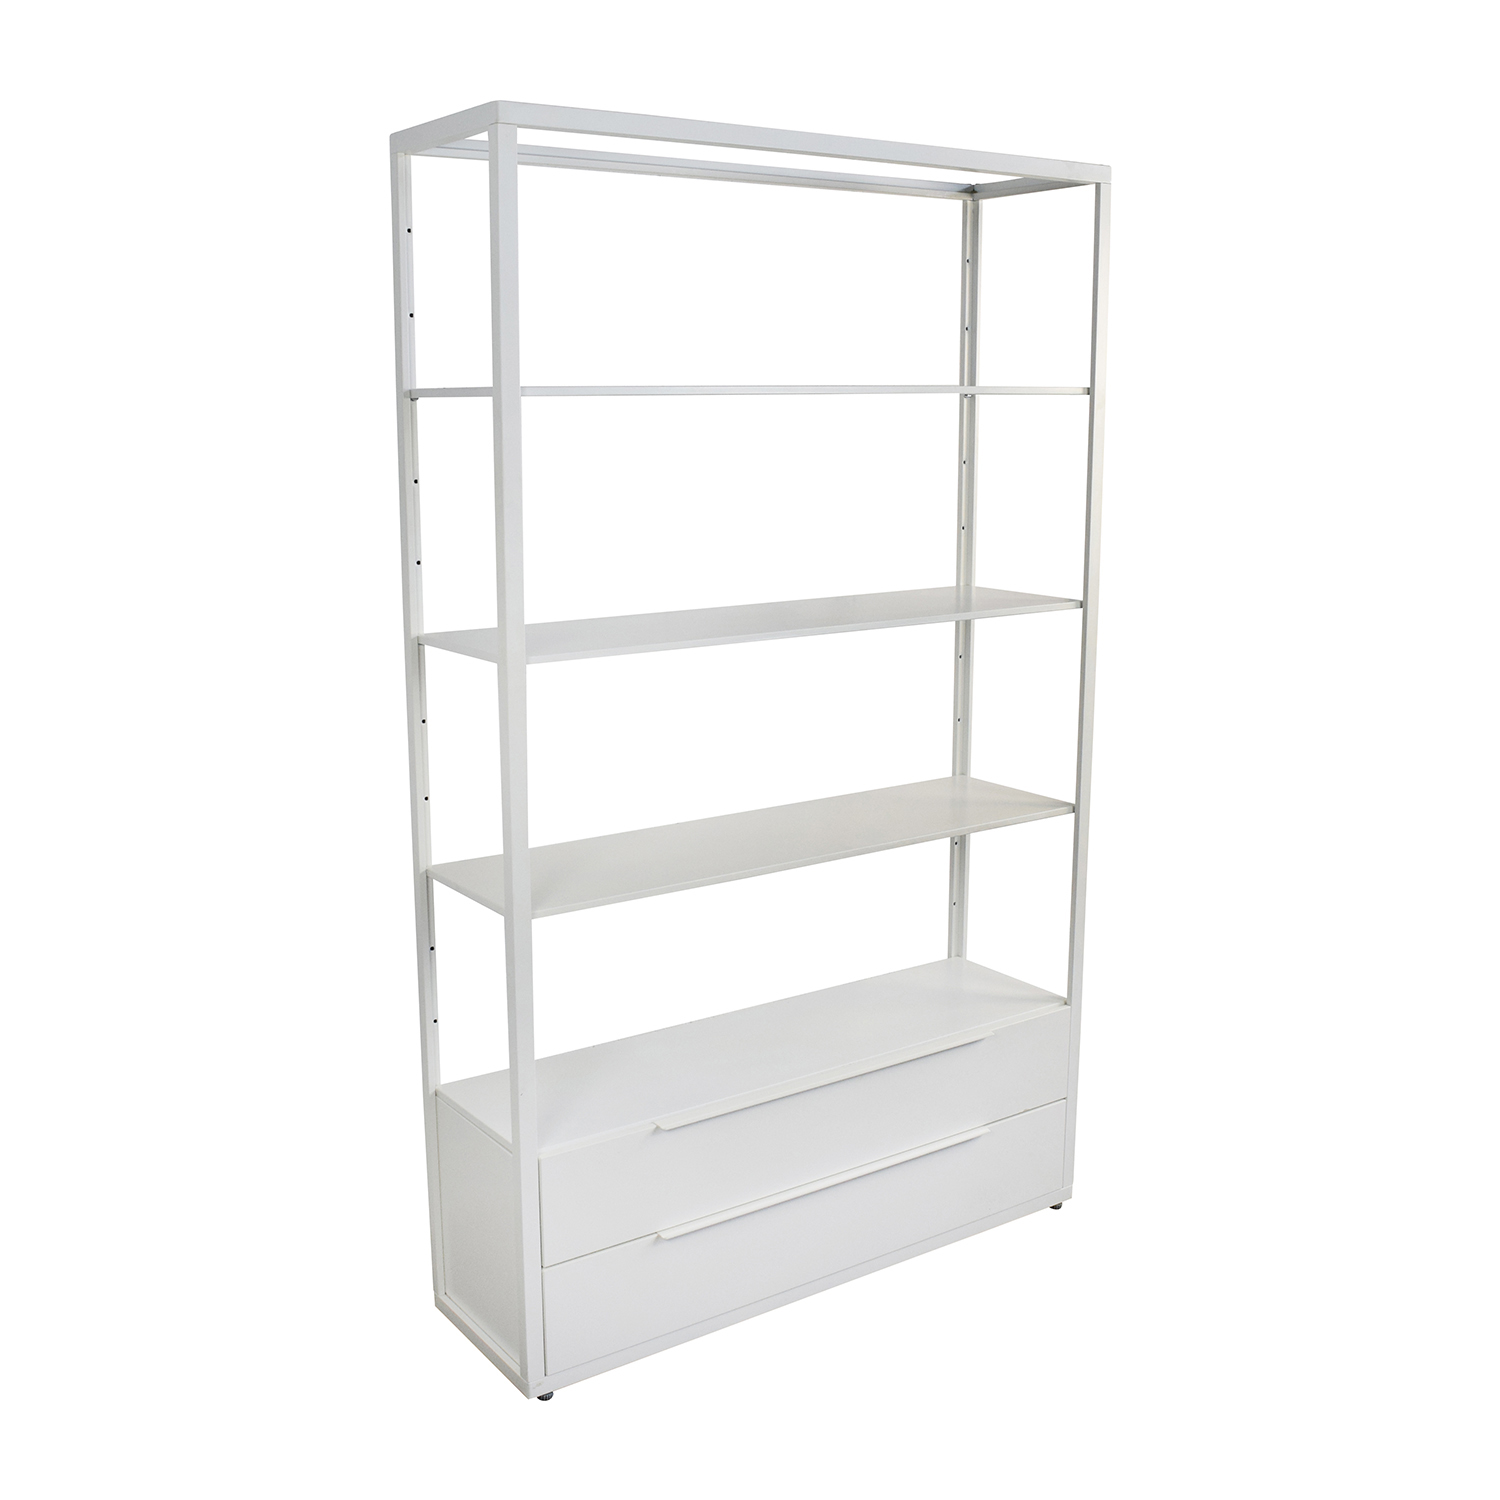 OFF IKEA IKEA White Shelving Unit with Drawers Storage